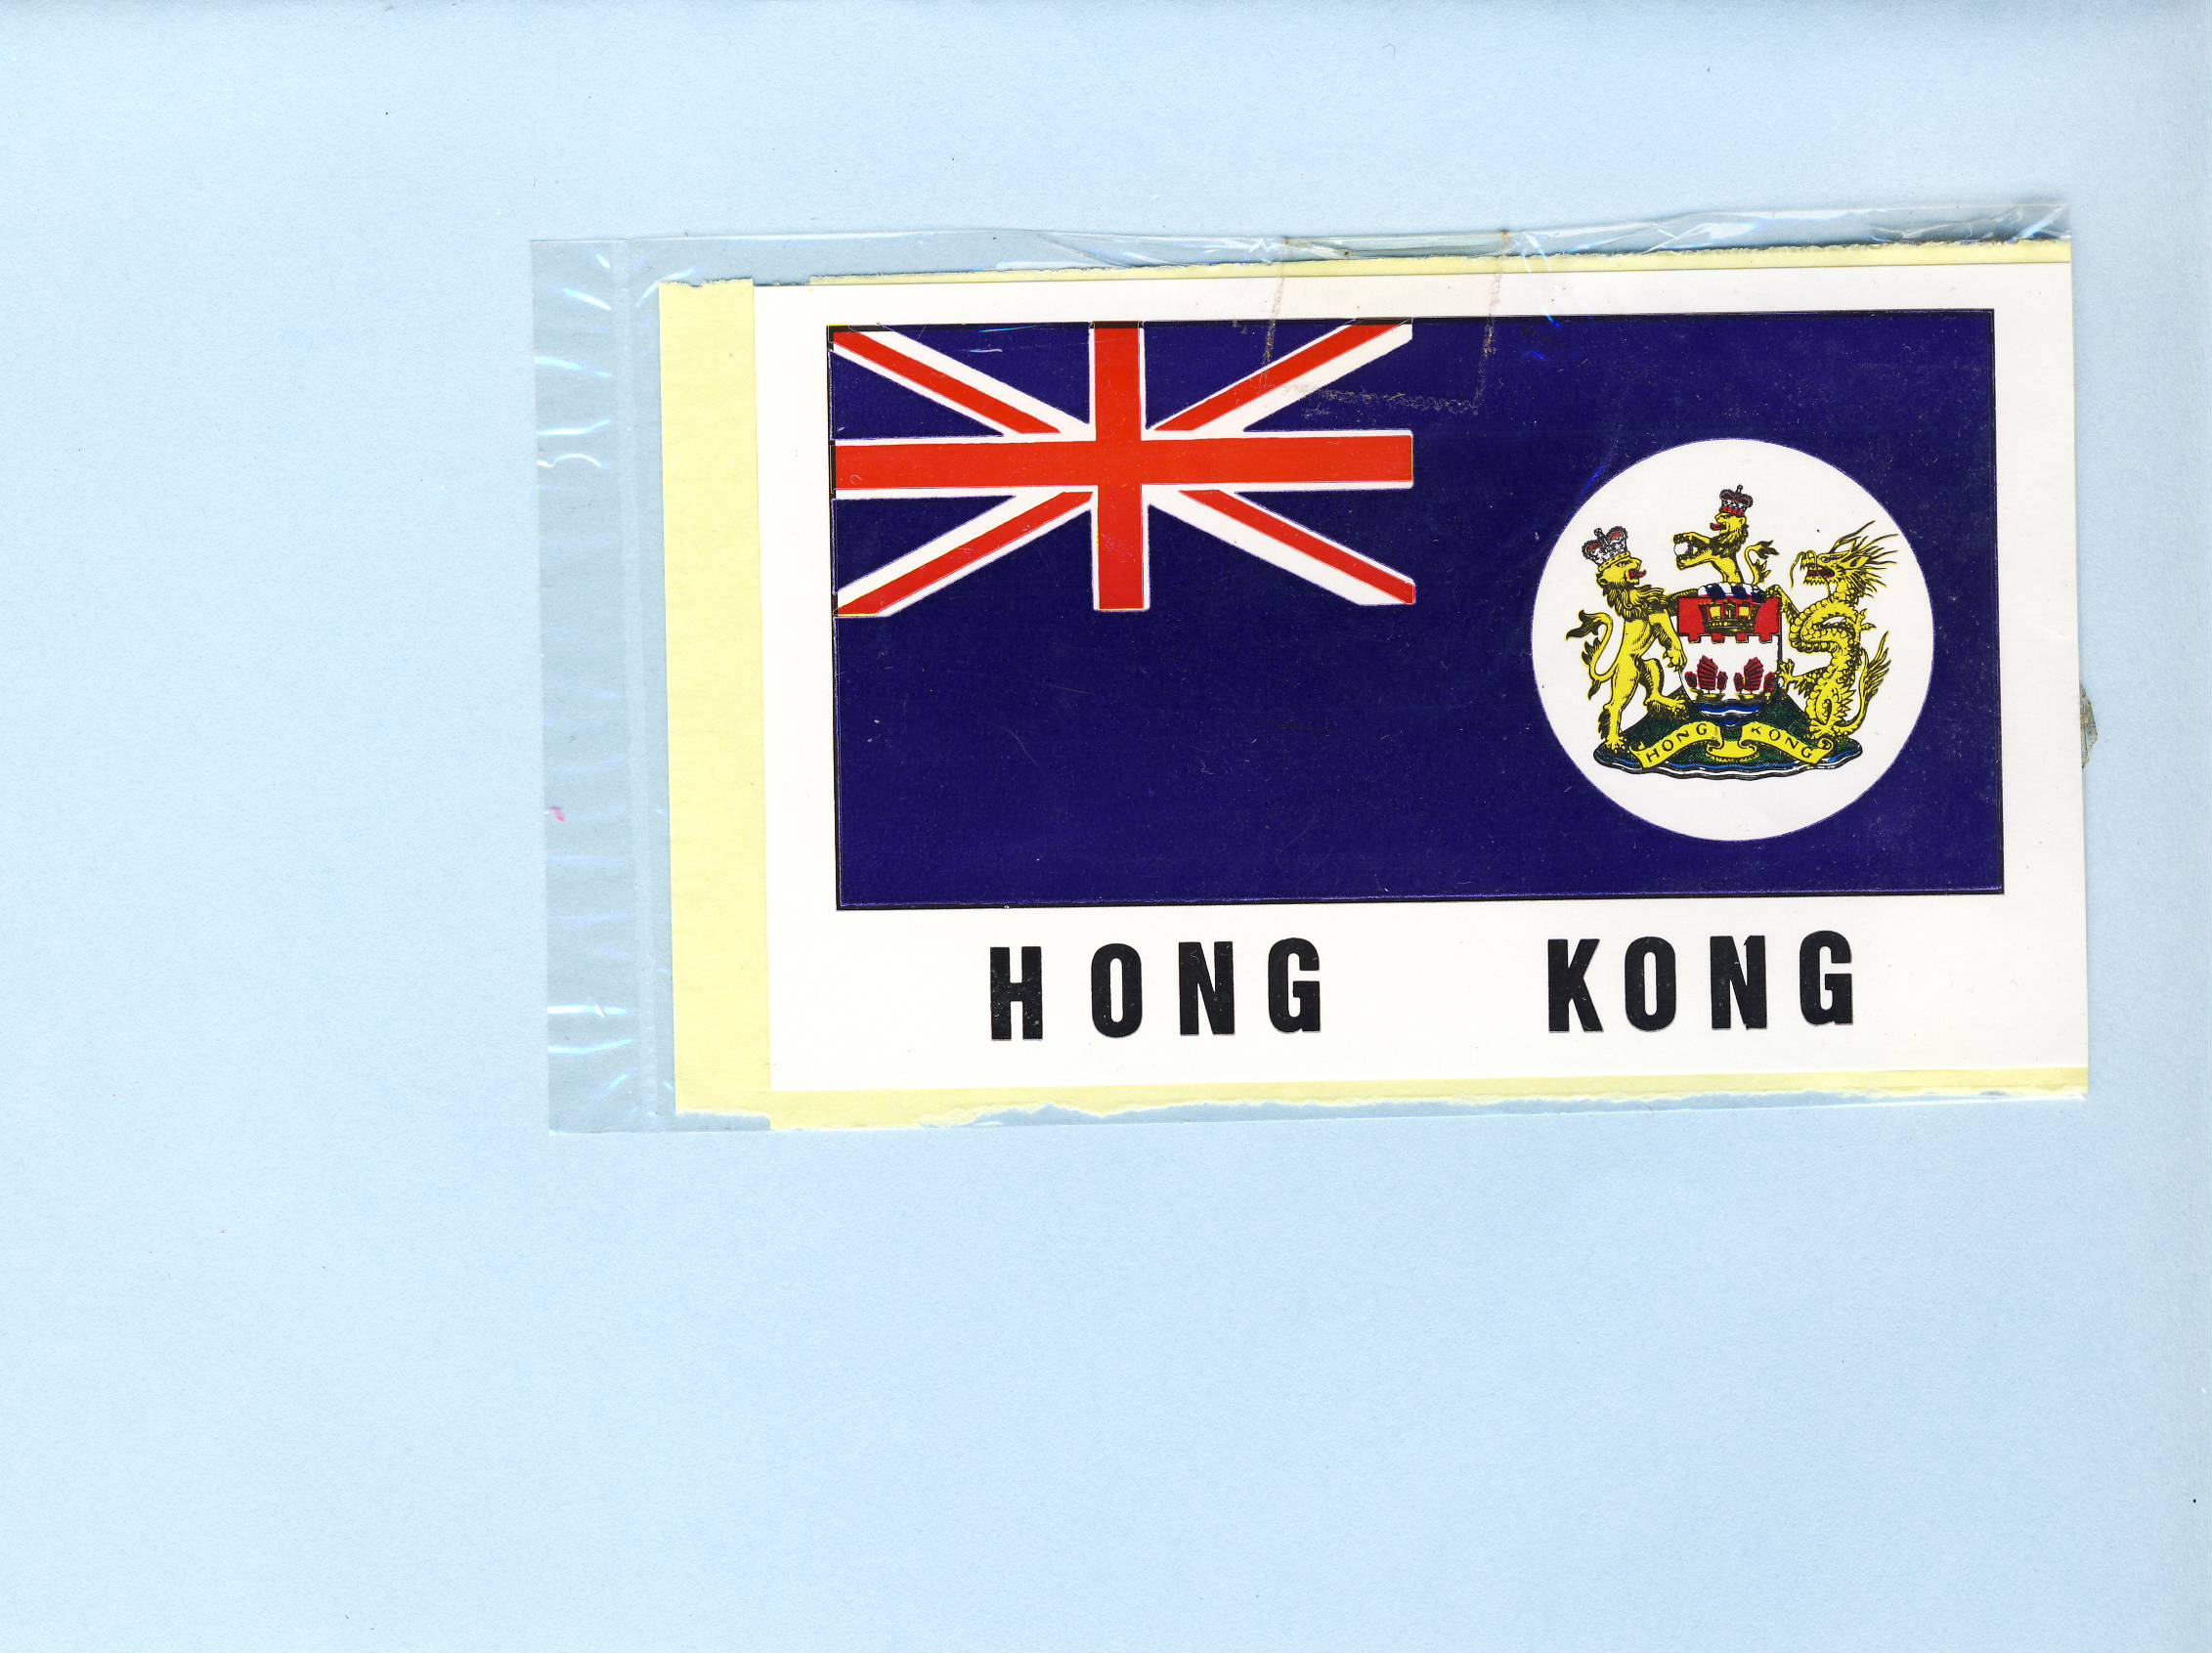 HONG KONG vintage souvenir Sticker refS5  a pre-owned vintage item in good condition. Measure approx. 7cm x 11cm - unopened.